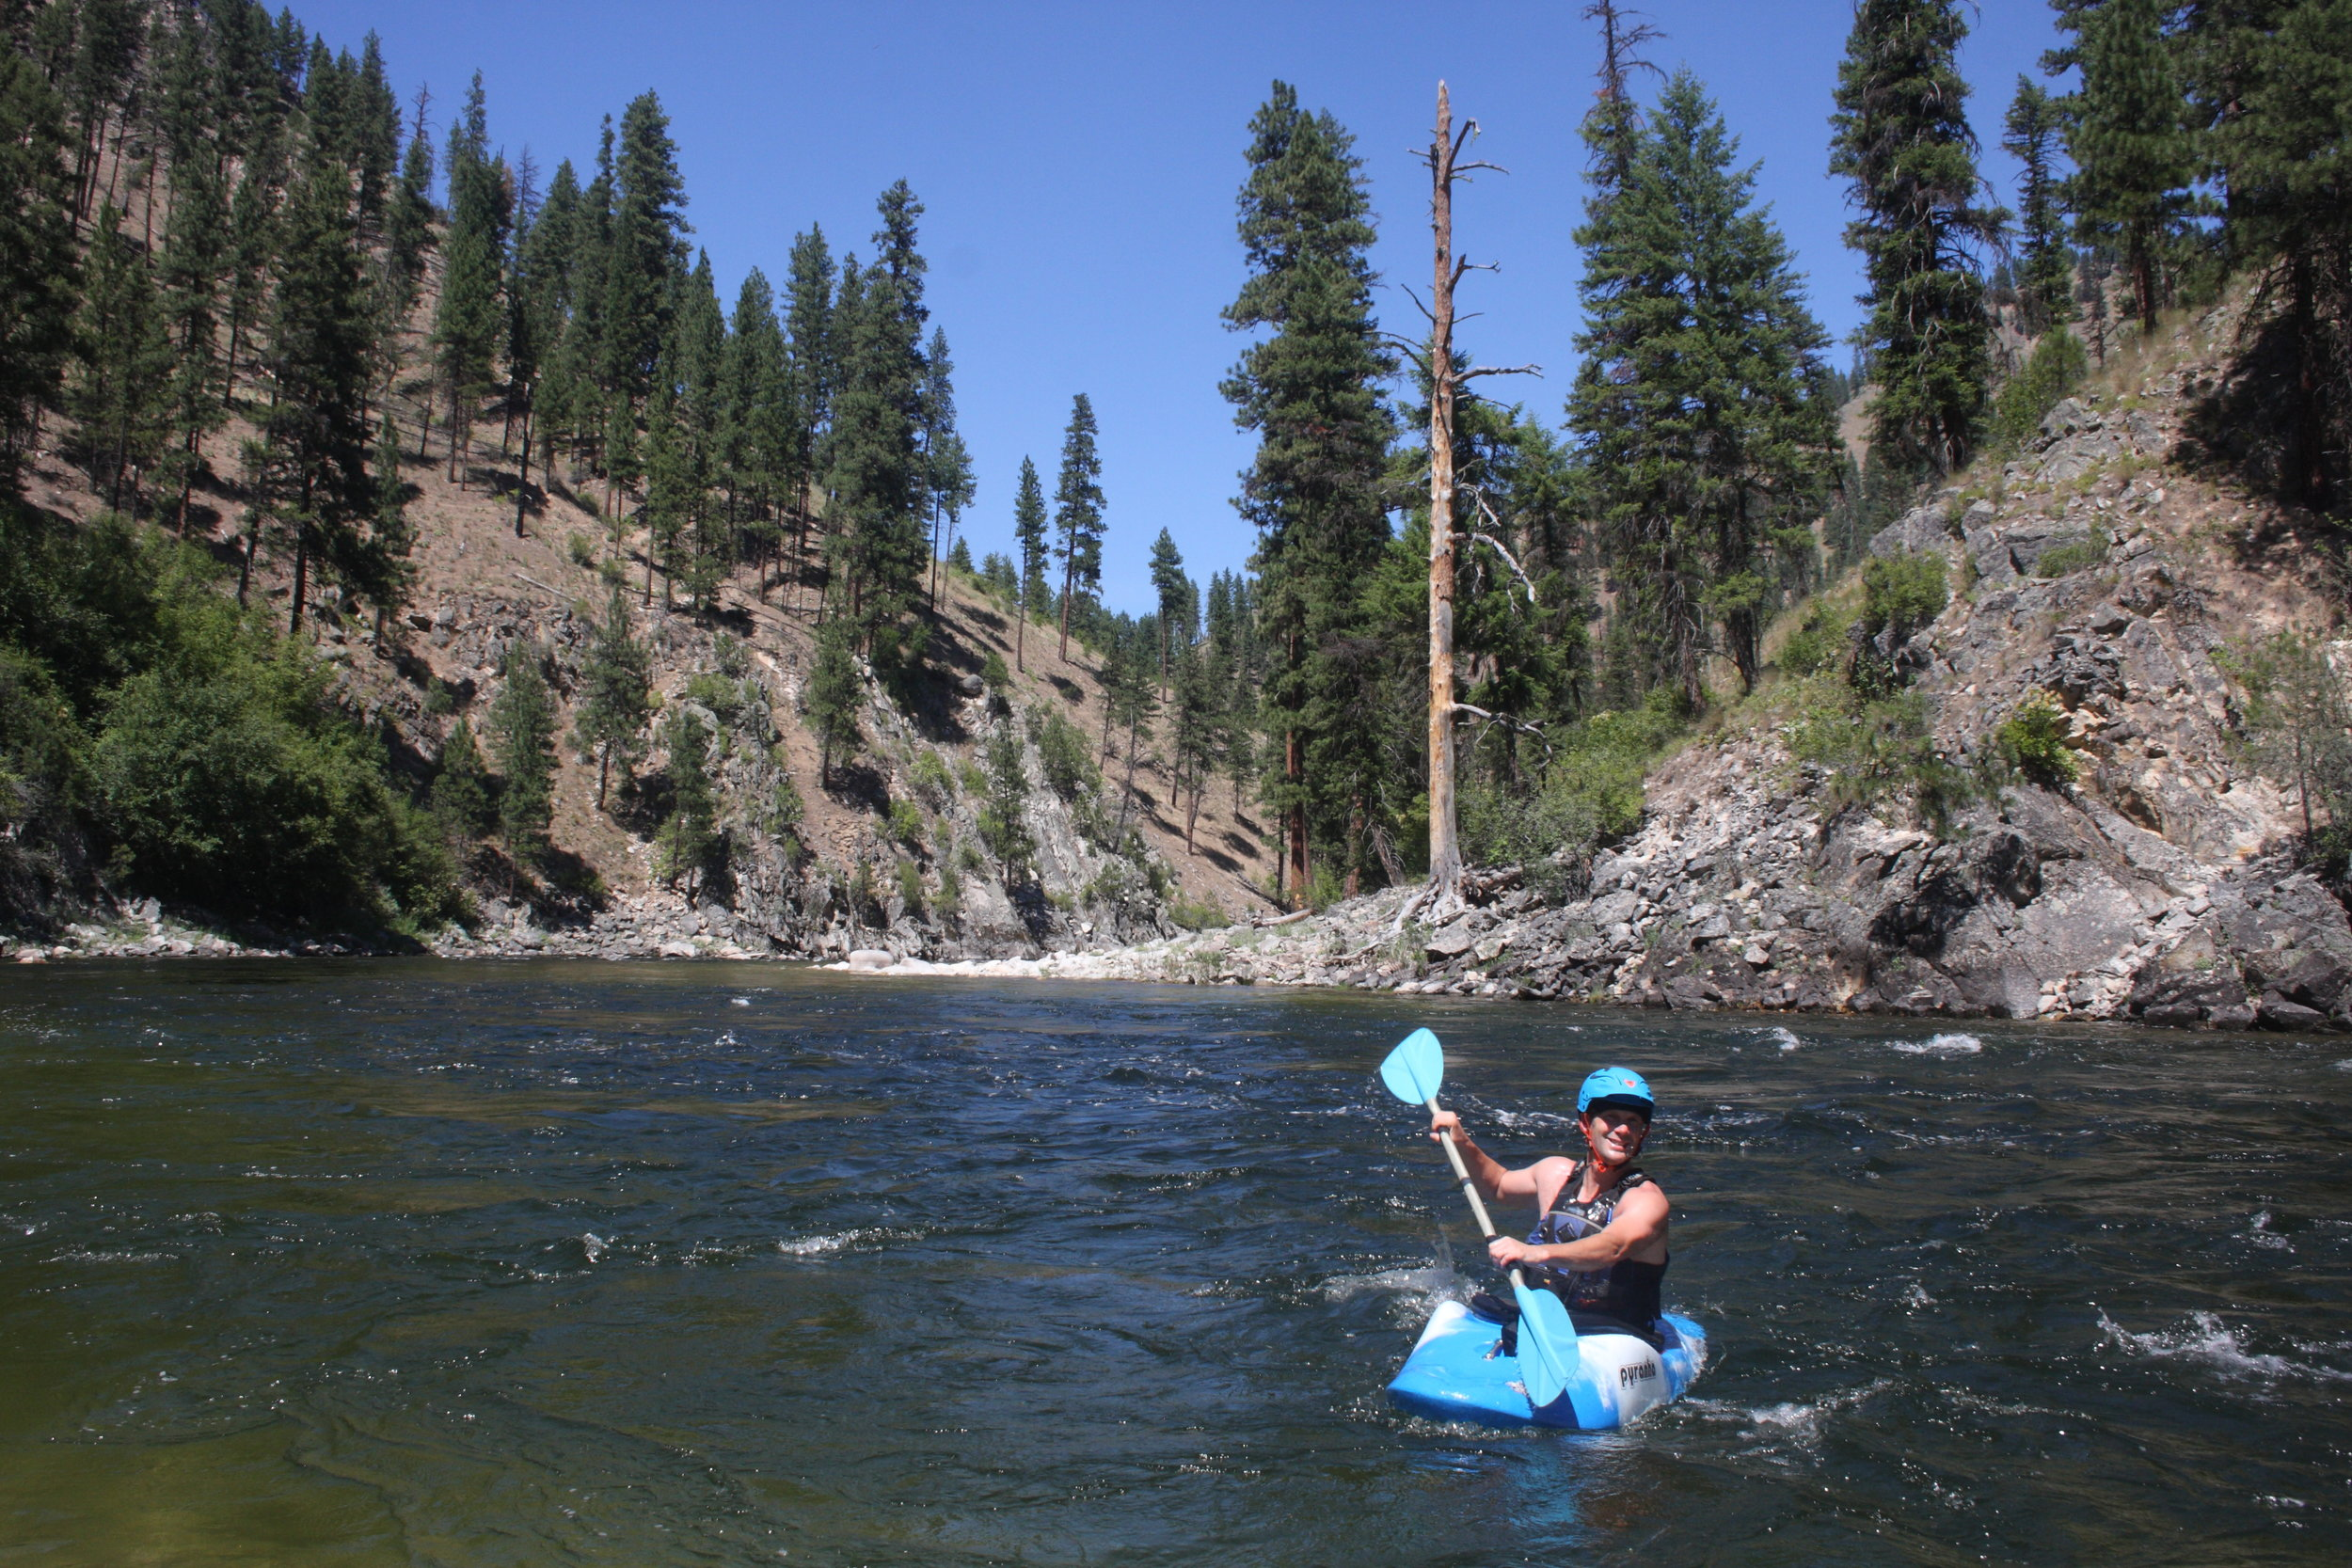 Our Greg Stahl playing in the clean, clear South Fork of the Salmon